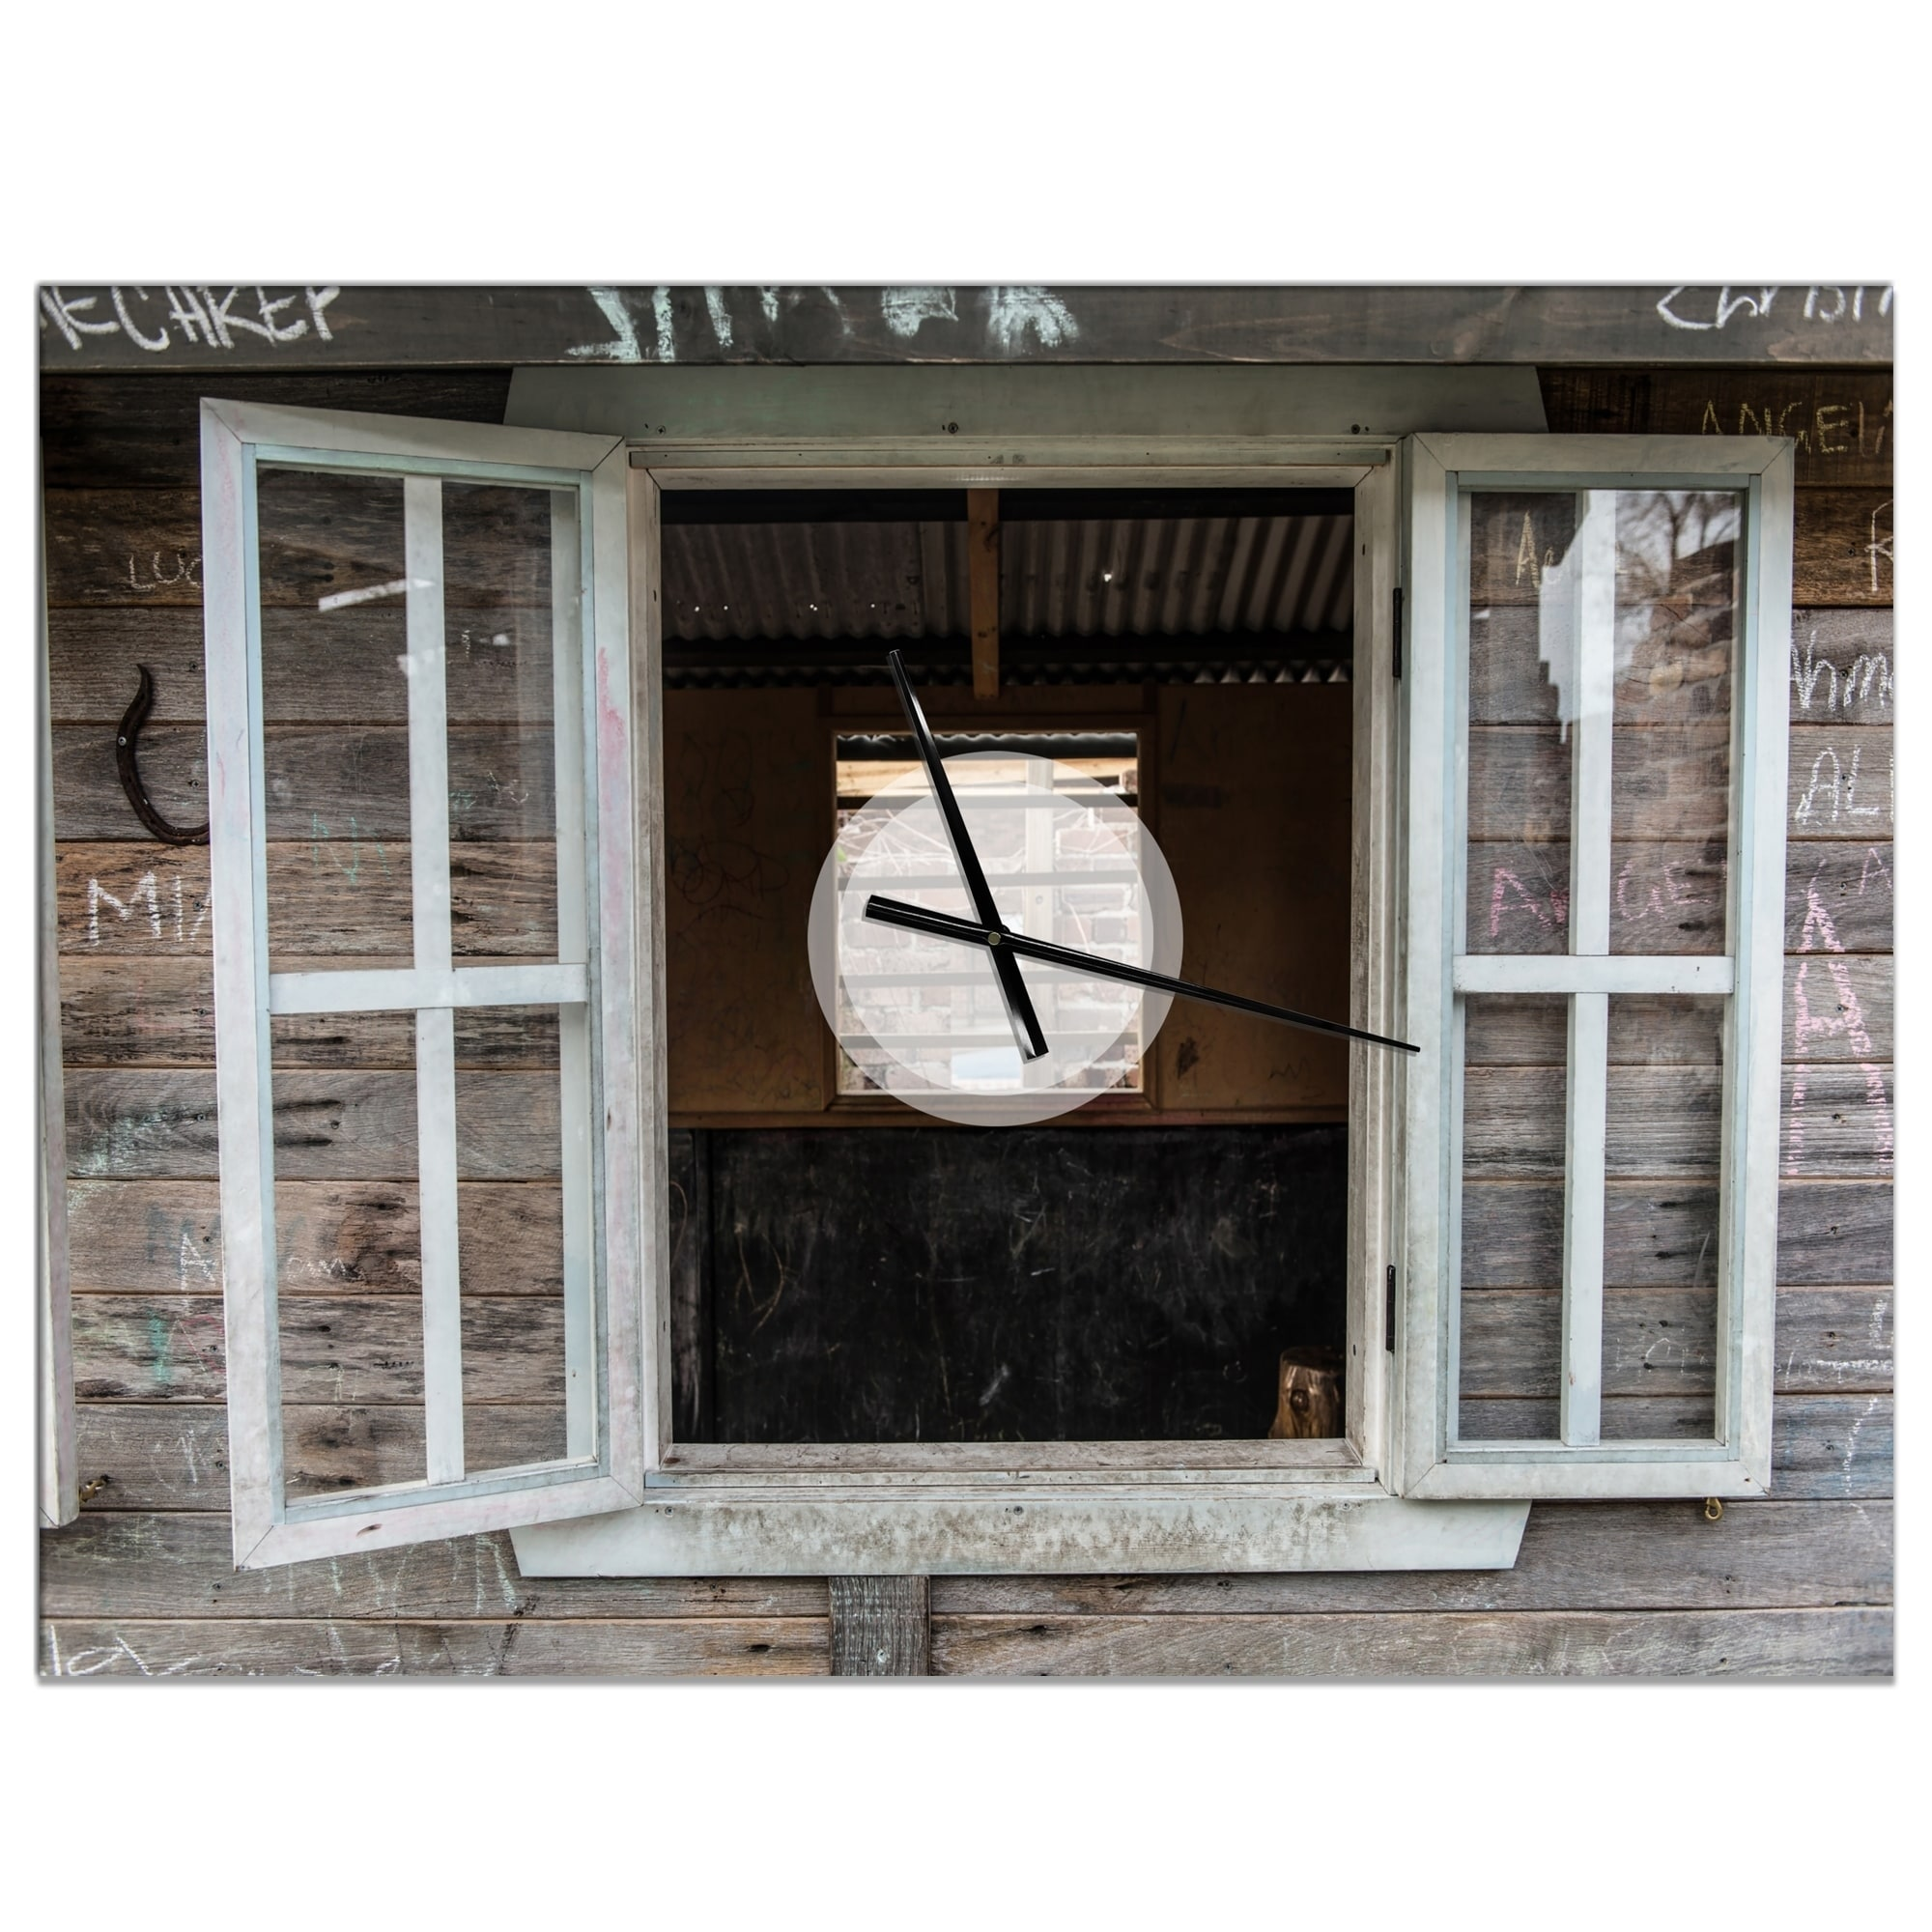 Designart Wooden Walls And Windows Oversized Farmhouse Wall Clock Overstock 24203895 40 In Wide X 30 In High